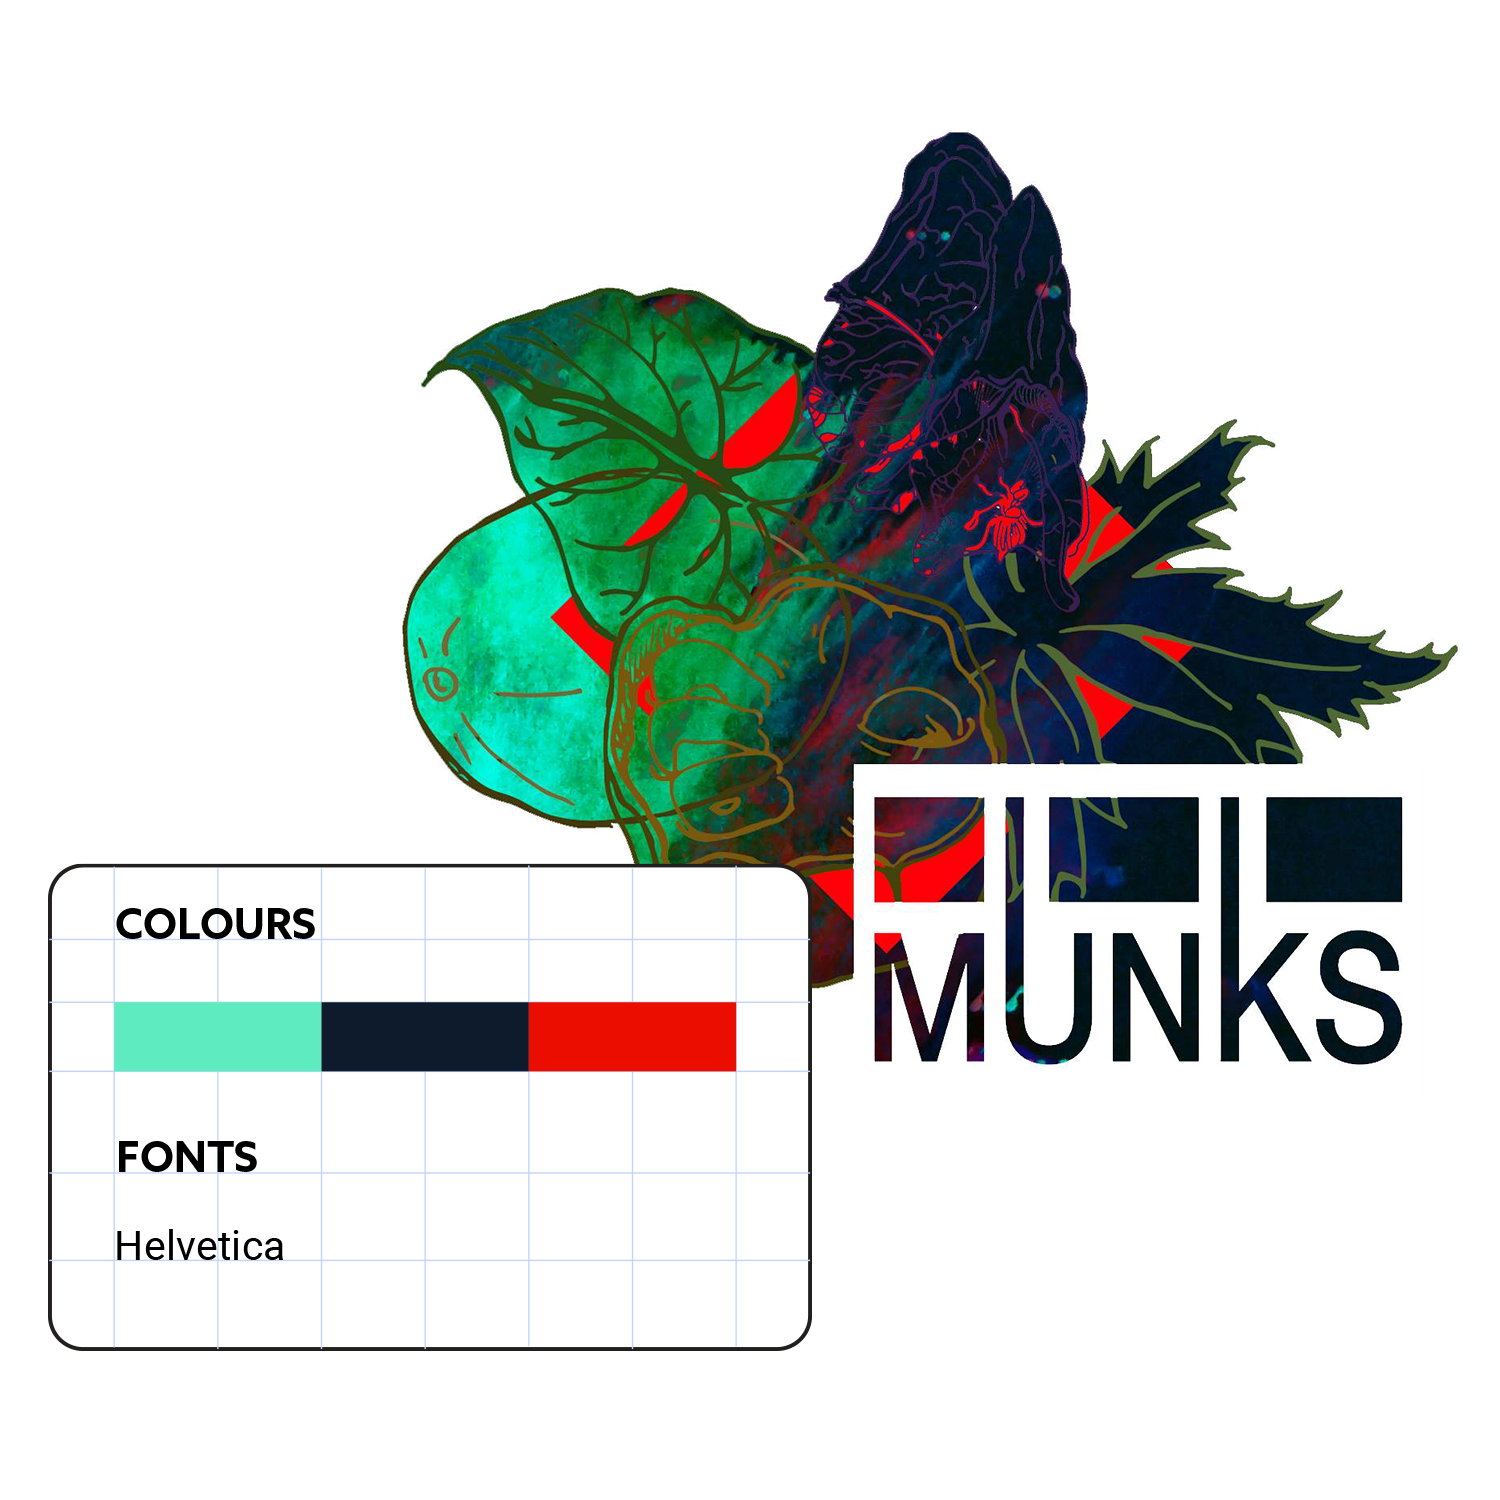 Munks EP cover art, colours and fonts by Studio Foyne